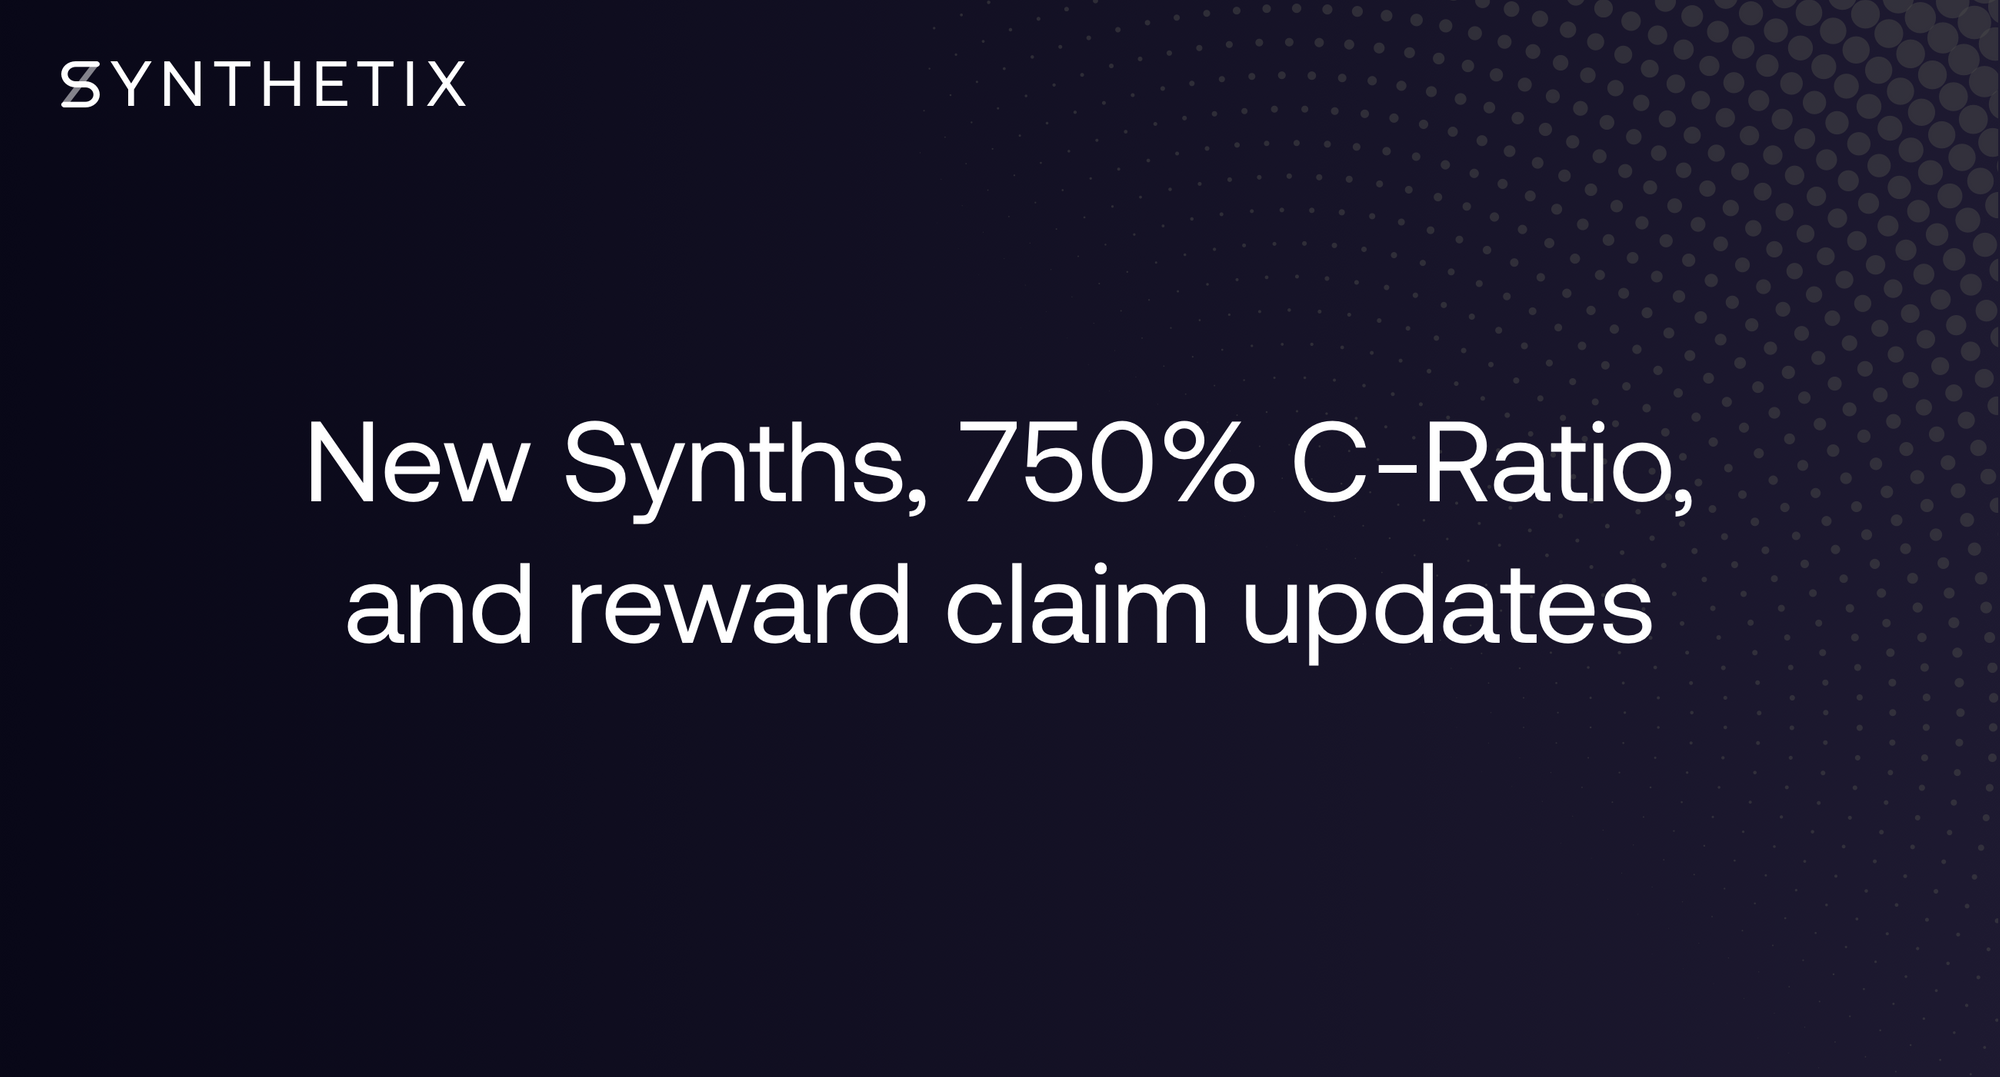 New crypto Synths, 750% C-Ratio, and reward claim updates!